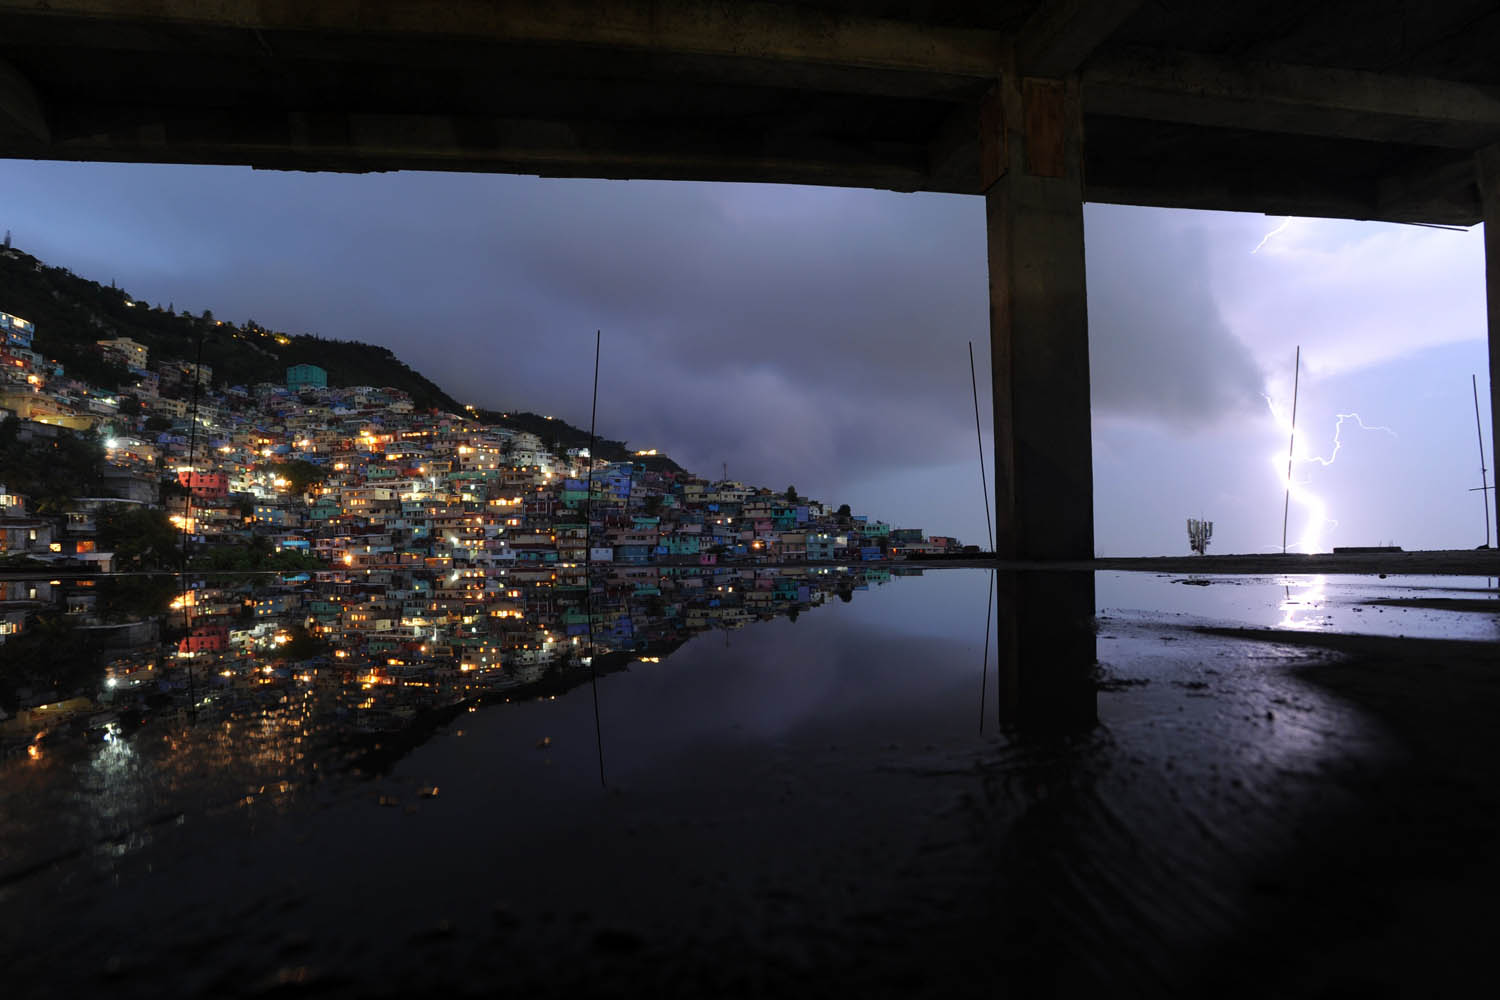 May 19, 2014. A long exposure shows lightning in the sky with reflection in the water on the floor of a building under construction during an evening thunderstorm in the Haitian capital Port-au-Prince.